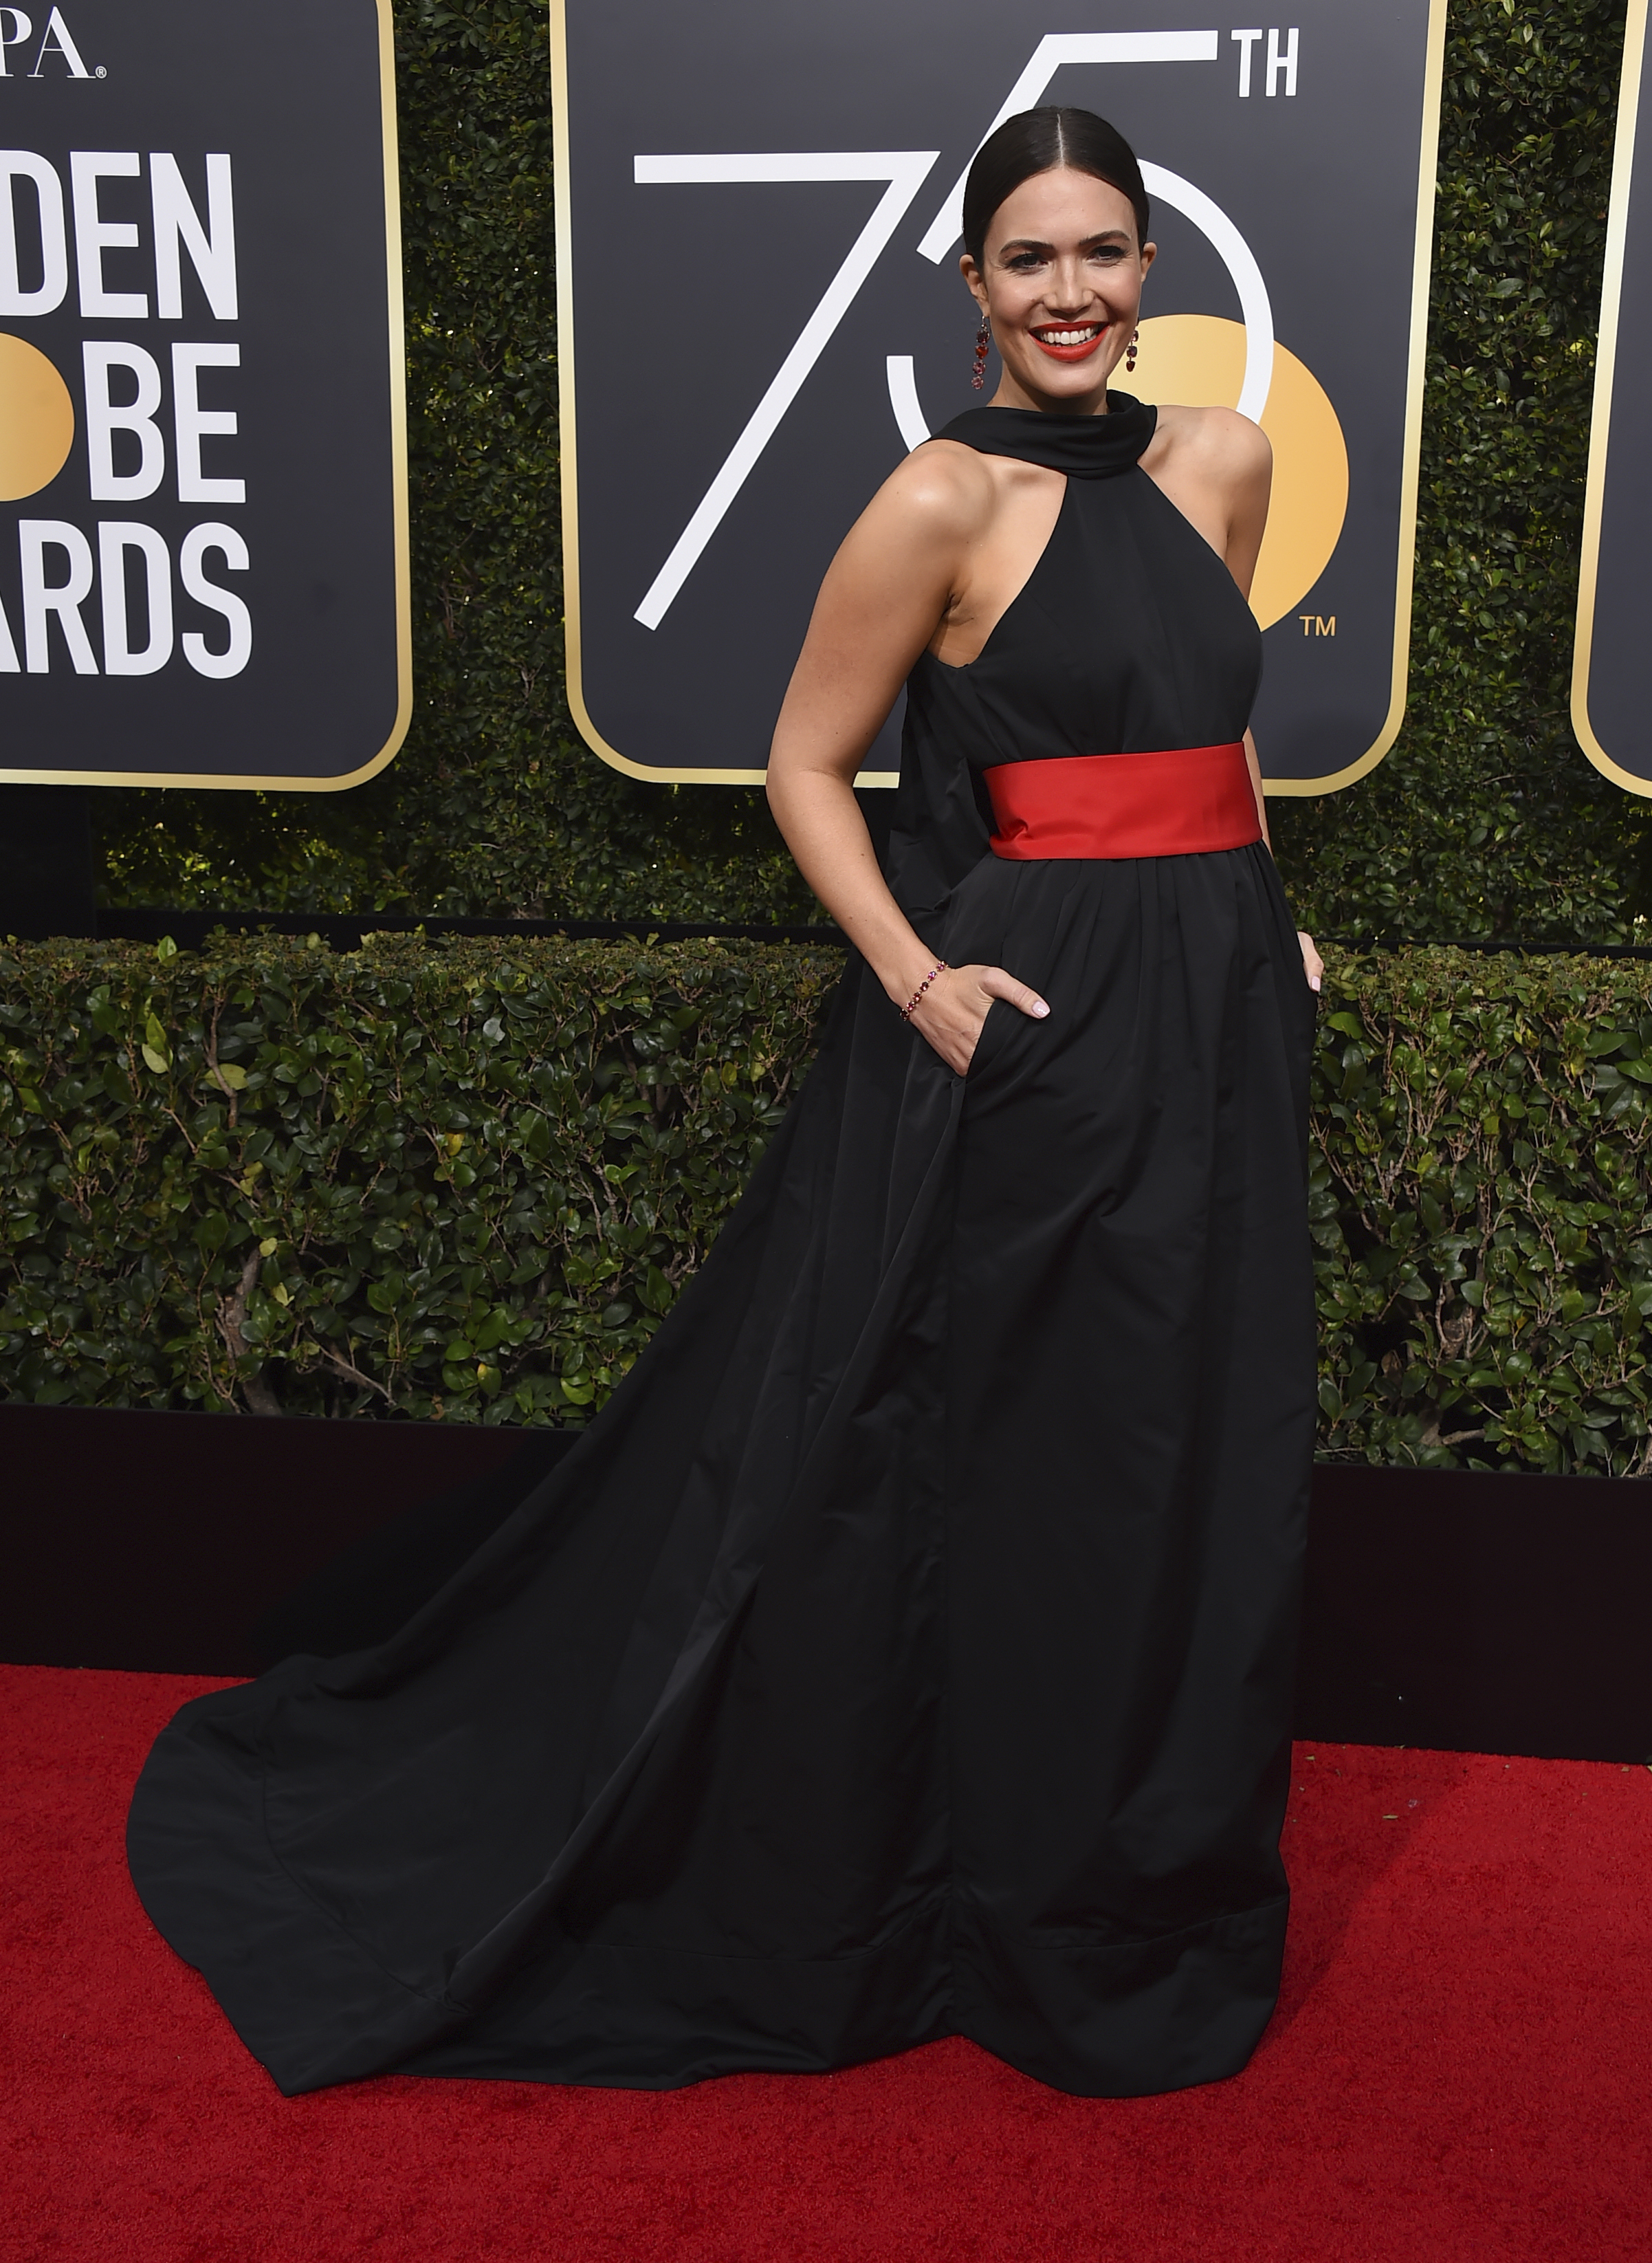 <div class='meta'><div class='origin-logo' data-origin='AP'></div><span class='caption-text' data-credit='Jordan Strauss/Invision/AP'>Mandy Moore arrives at the 75th annual Golden Globe Awards at the Beverly Hilton Hotel on Sunday, Jan. 7, 2018, in Beverly Hills, Calif.</span></div>